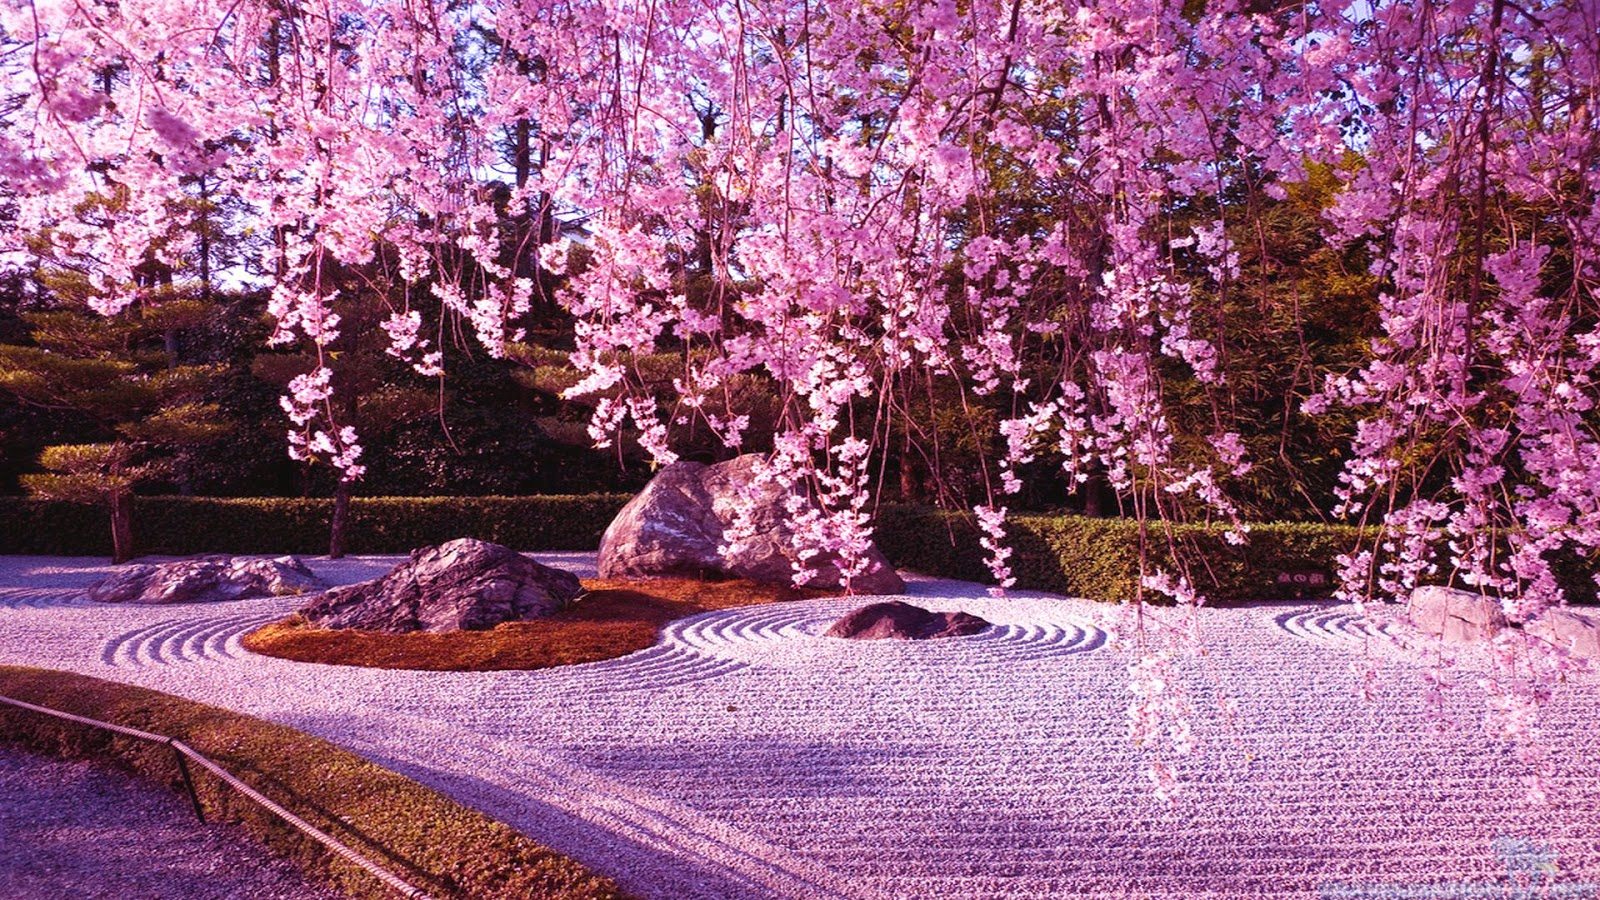 japanese cherry blossom garden wallpaperhttprefreshroseblogspot